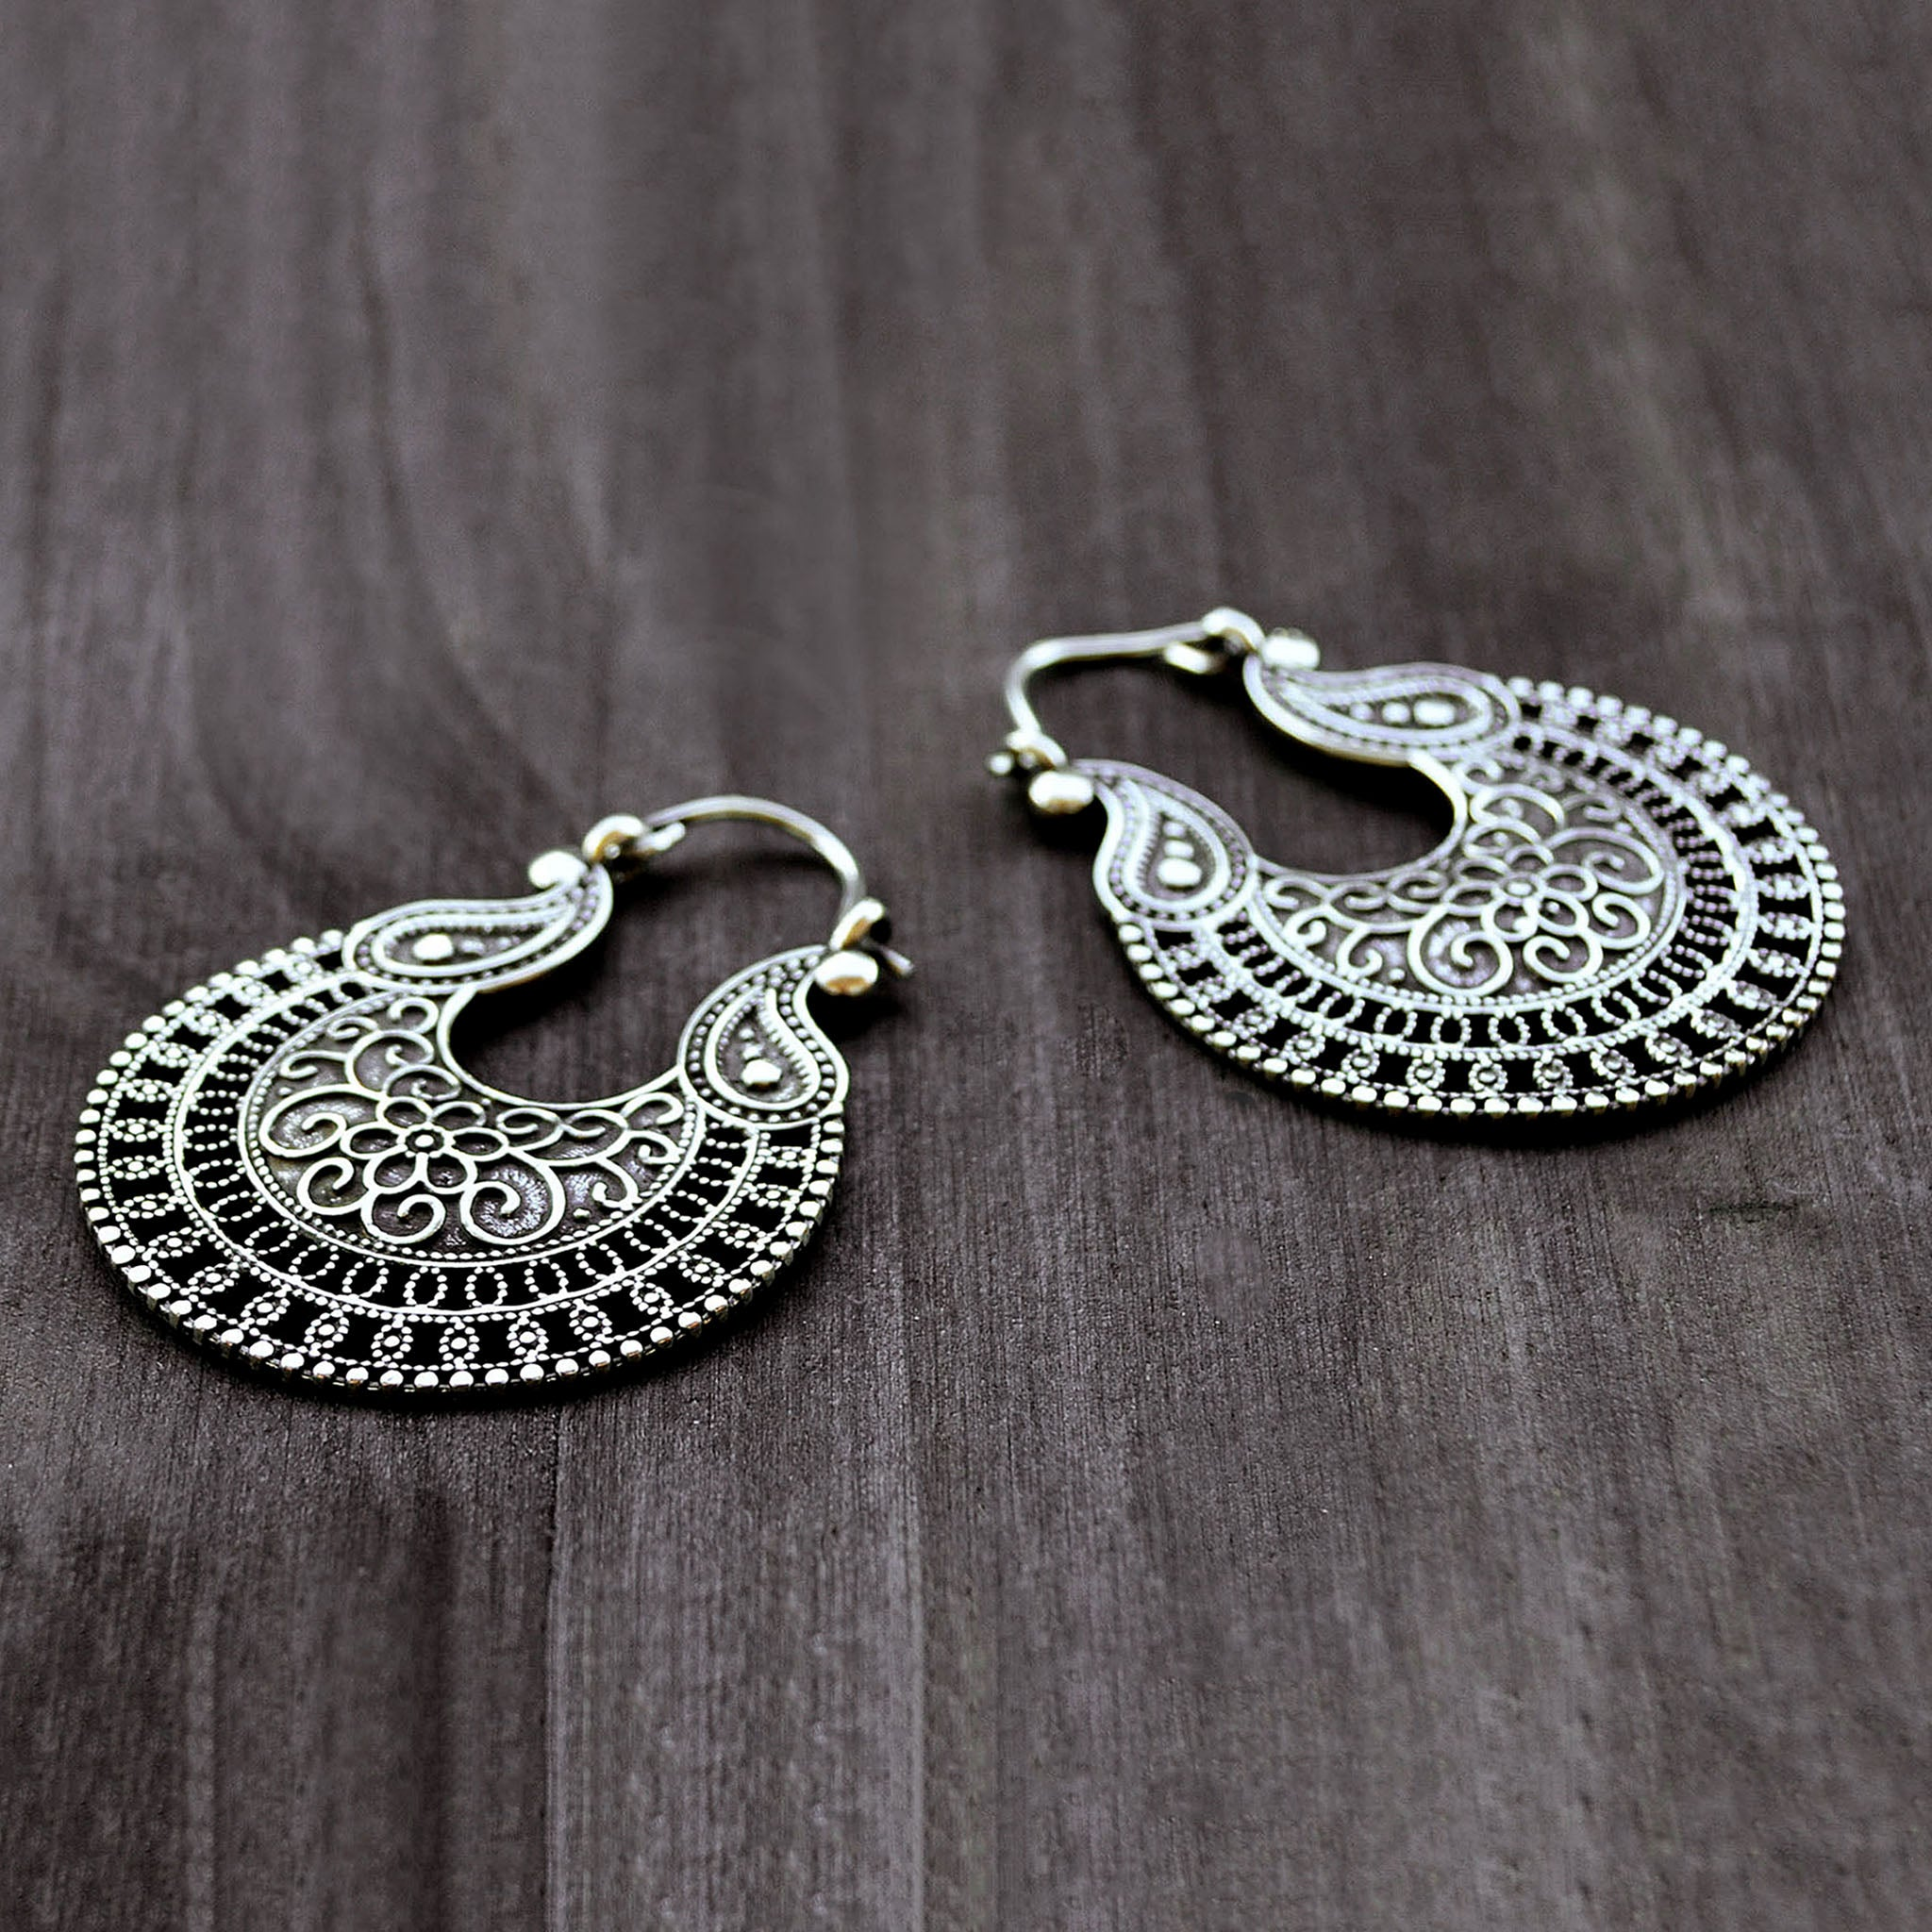 Silver ornate earrings